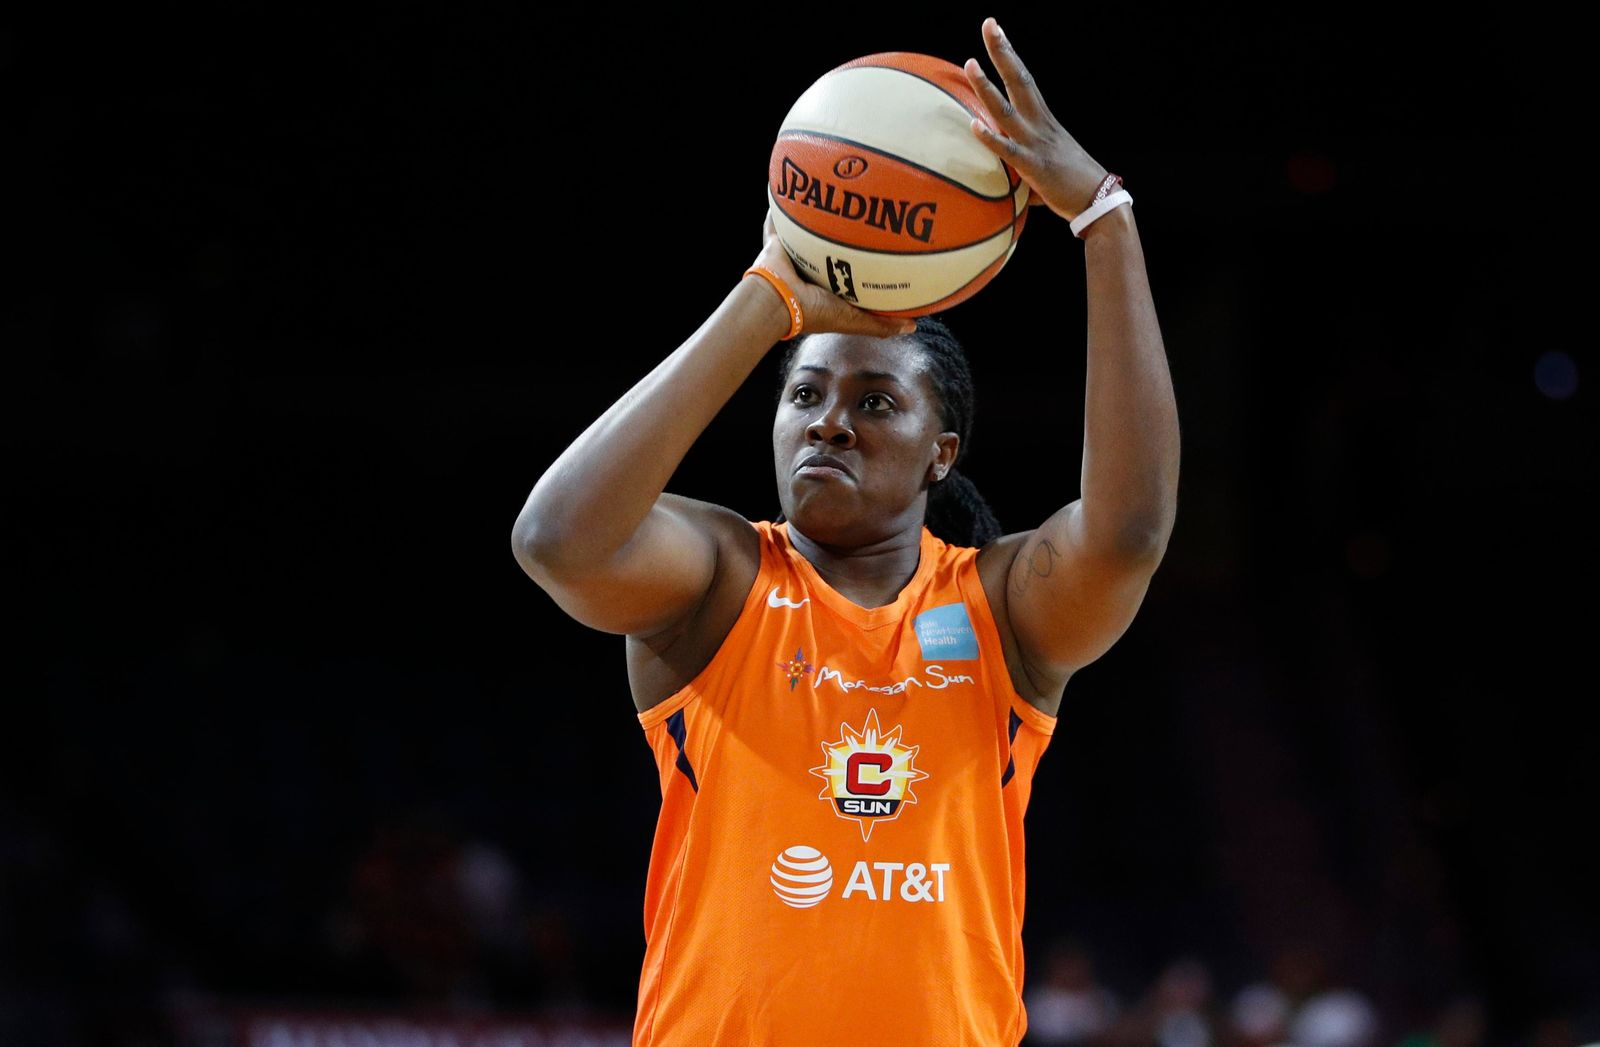 FILE - In this July 26, 2019, file photo, Connecticut Sun's Shekinna Stricklen shoots during the WNBA All-Star 3-point contest in Las Vegas. (AP Photo/John Locher, File)